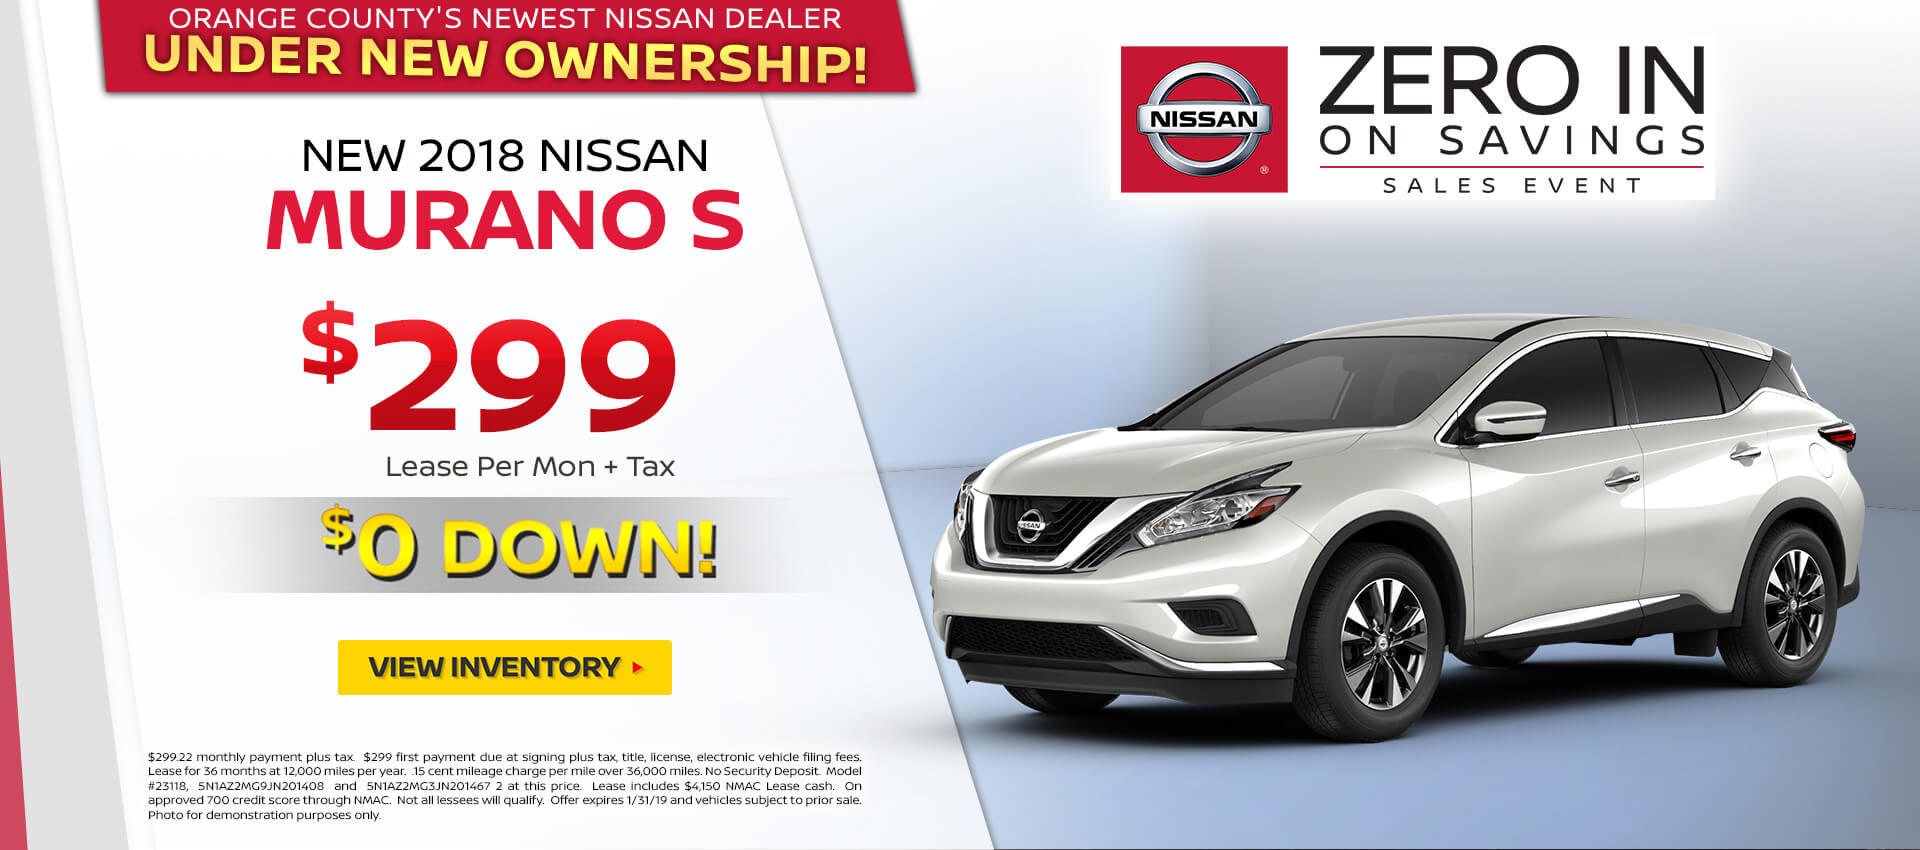 2018 Nissan Murano Special